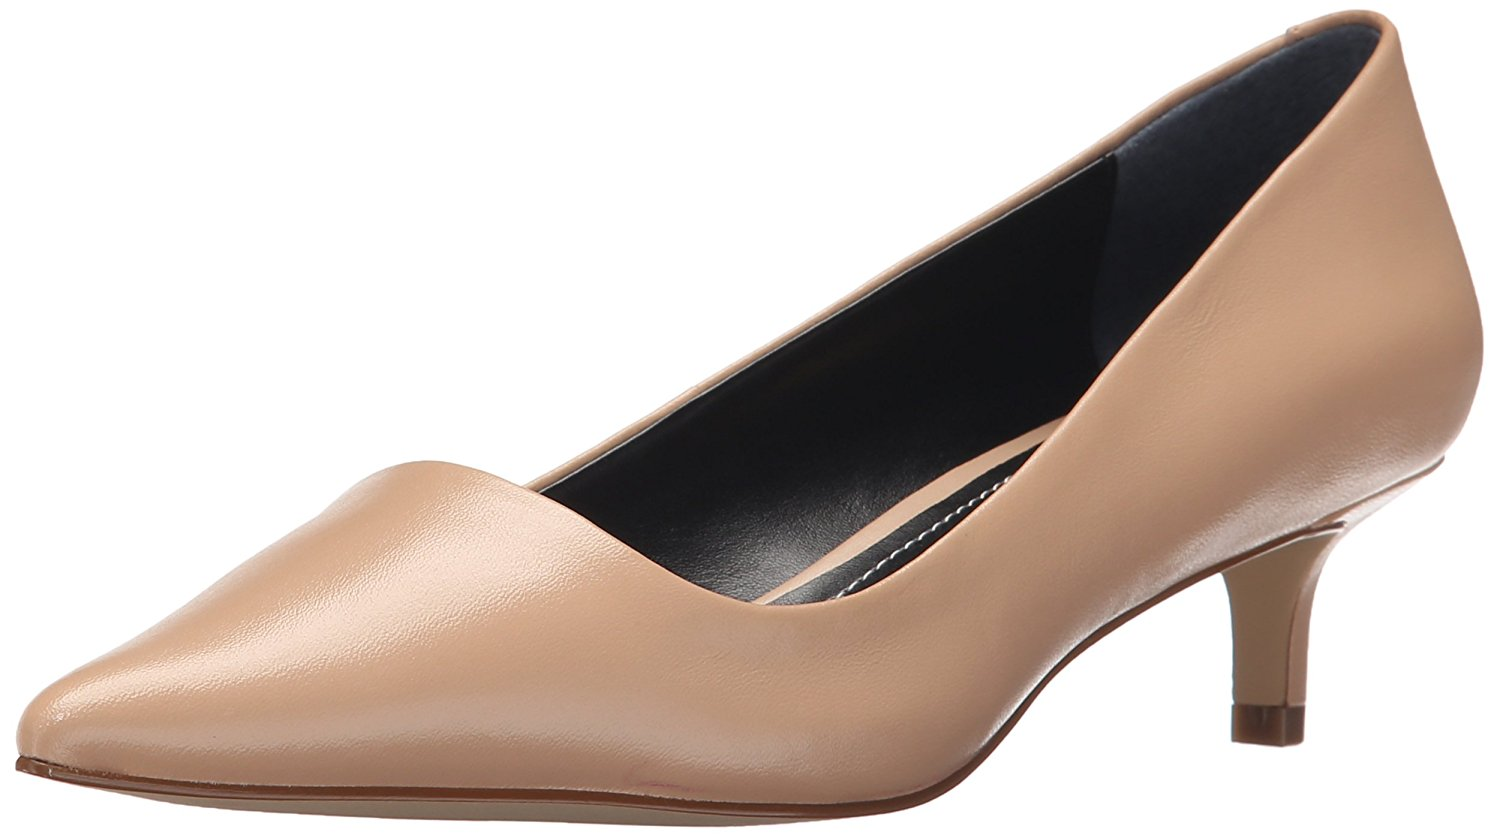 Charles by Charles David Womens Drew Pointed Toe Classic Pumps Nude Size 7.0 o